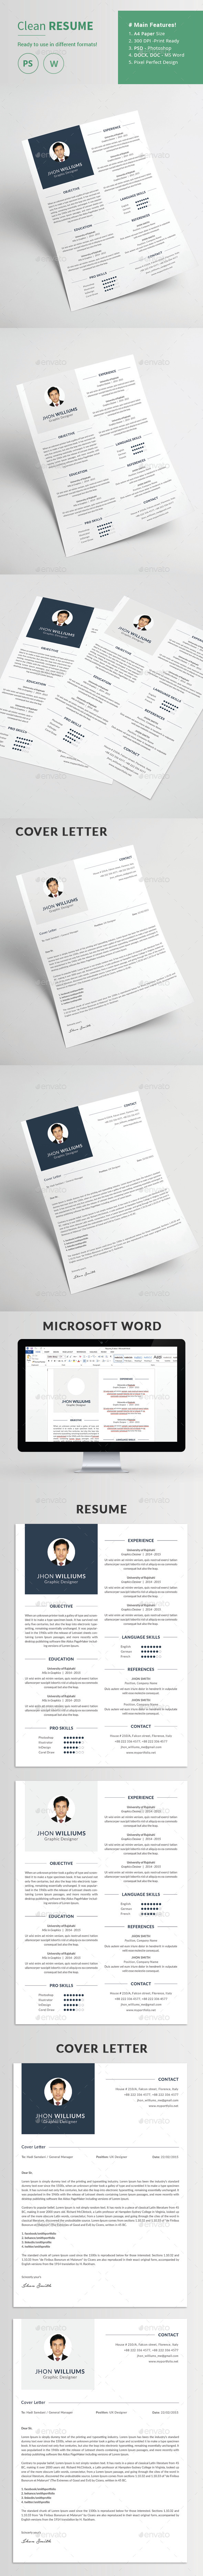 Clean Resume and Cover Letter - Resumes Stationery